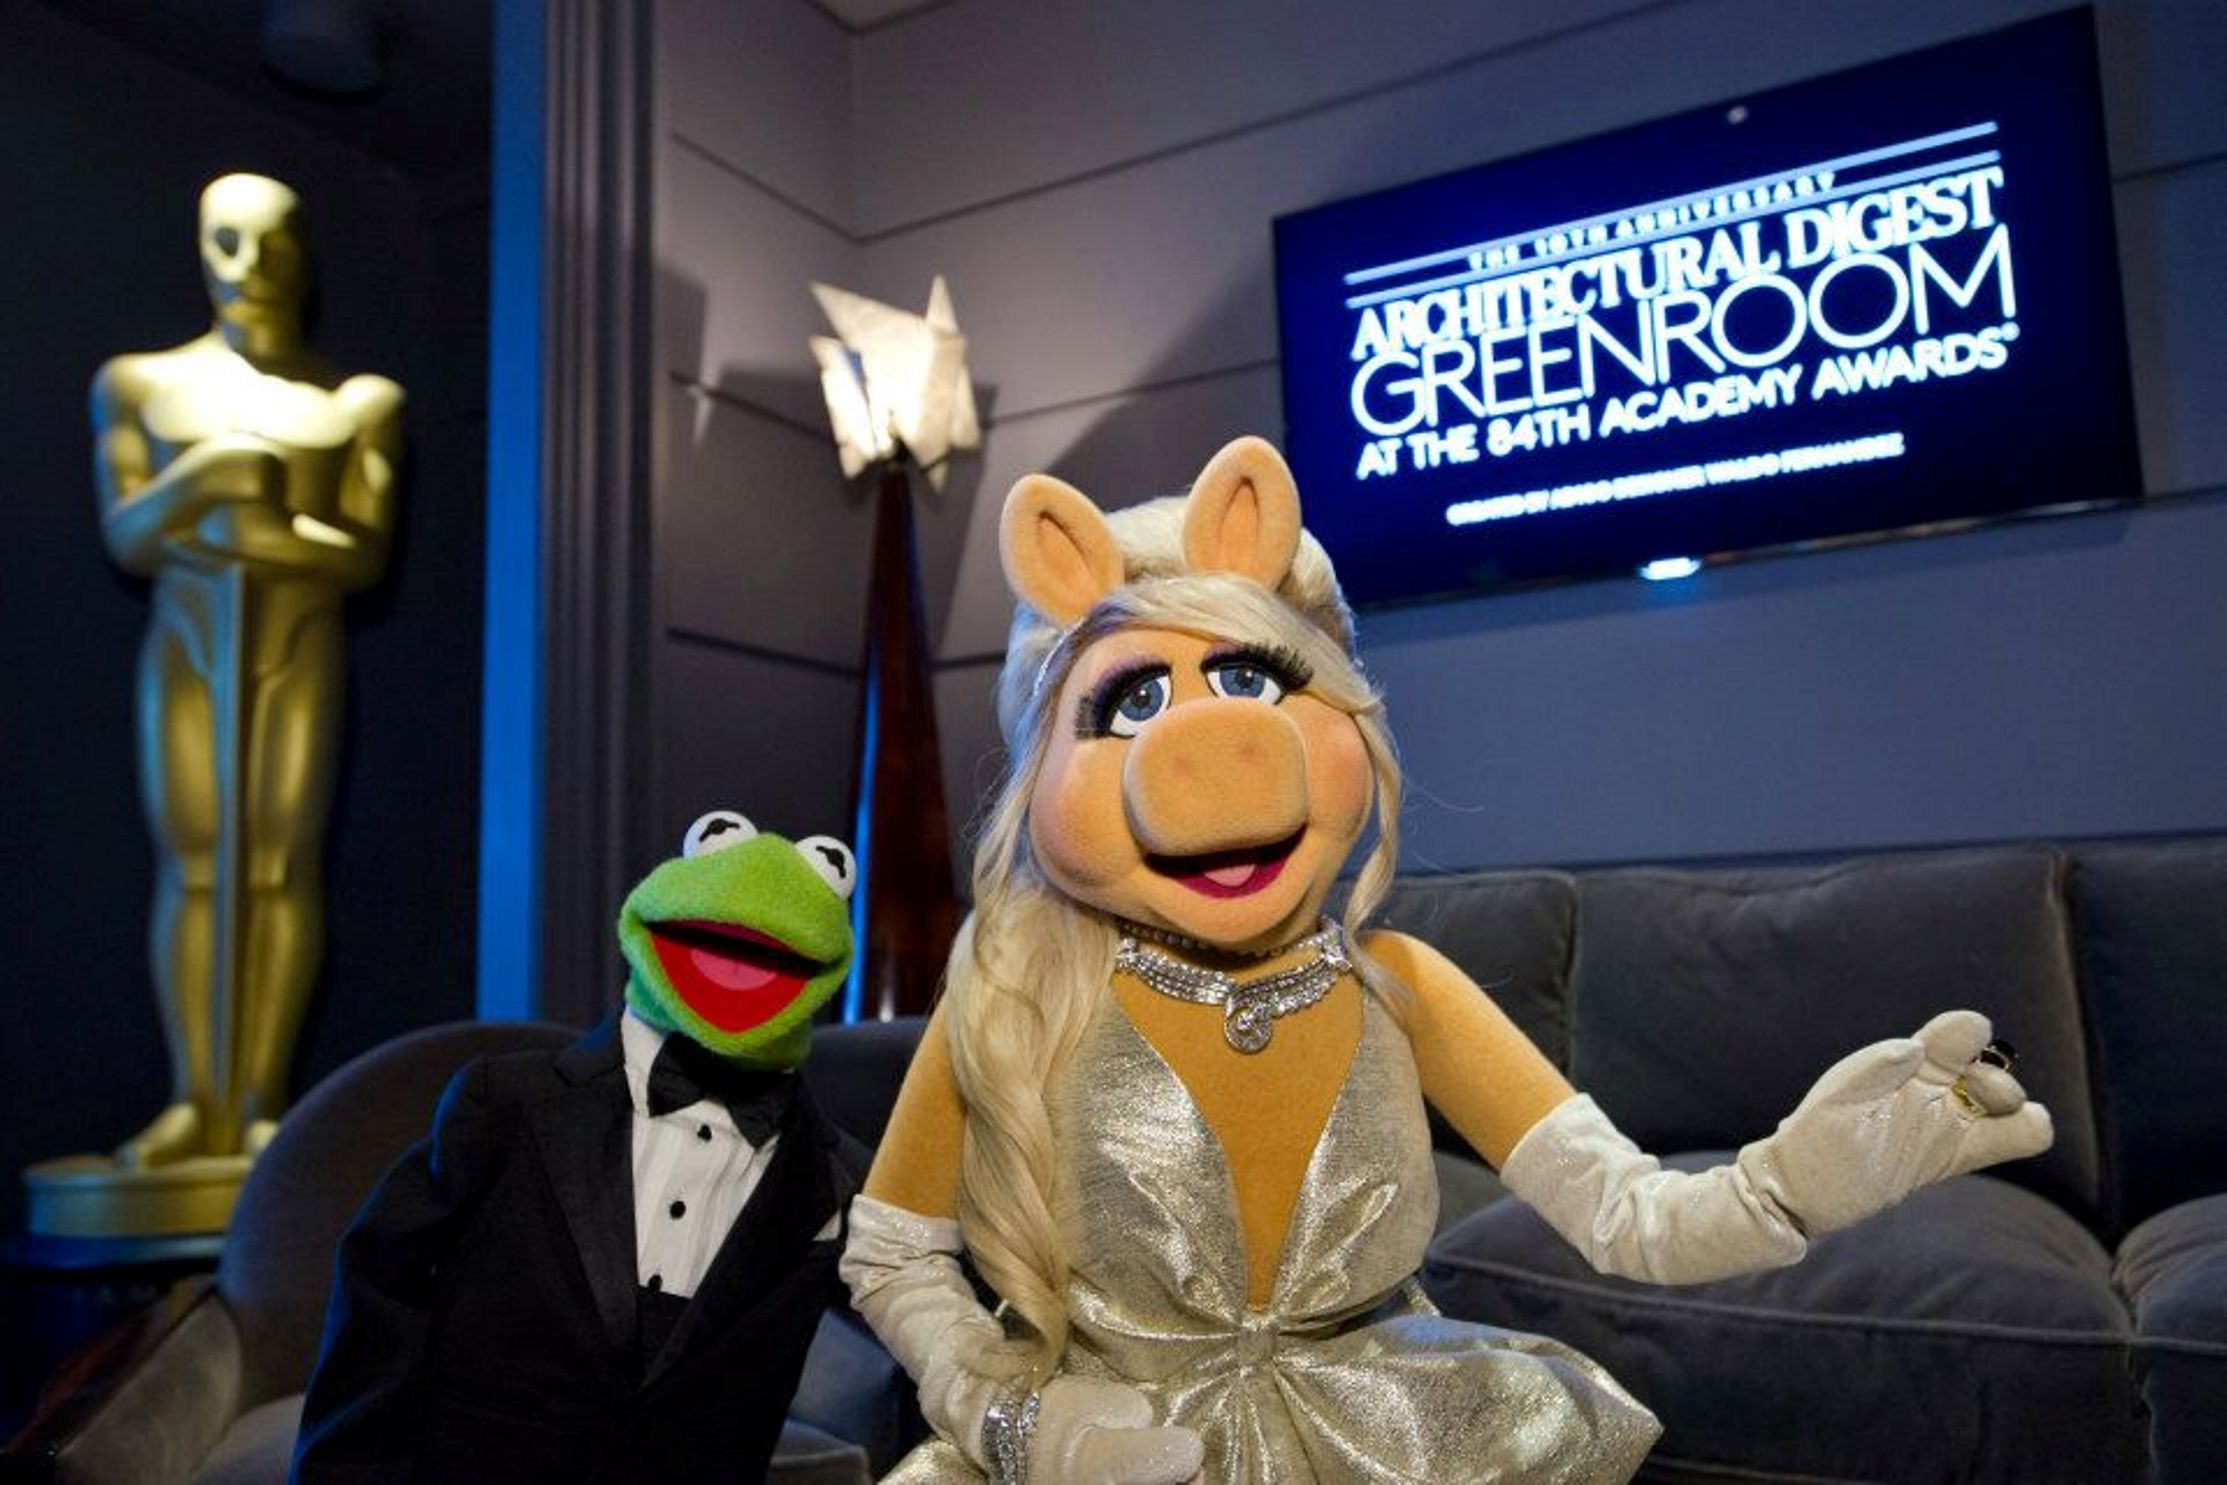 the Frog (in Brooks Brothers) and Miss Piggy (dress: Zac Posen, shoes: Christian Louboutin, jewelry: Fred Leighton, hair: Kim Kimble) at the 84th Annual Academy Awards ©A.M.P.A.S. At KODAK theatre.